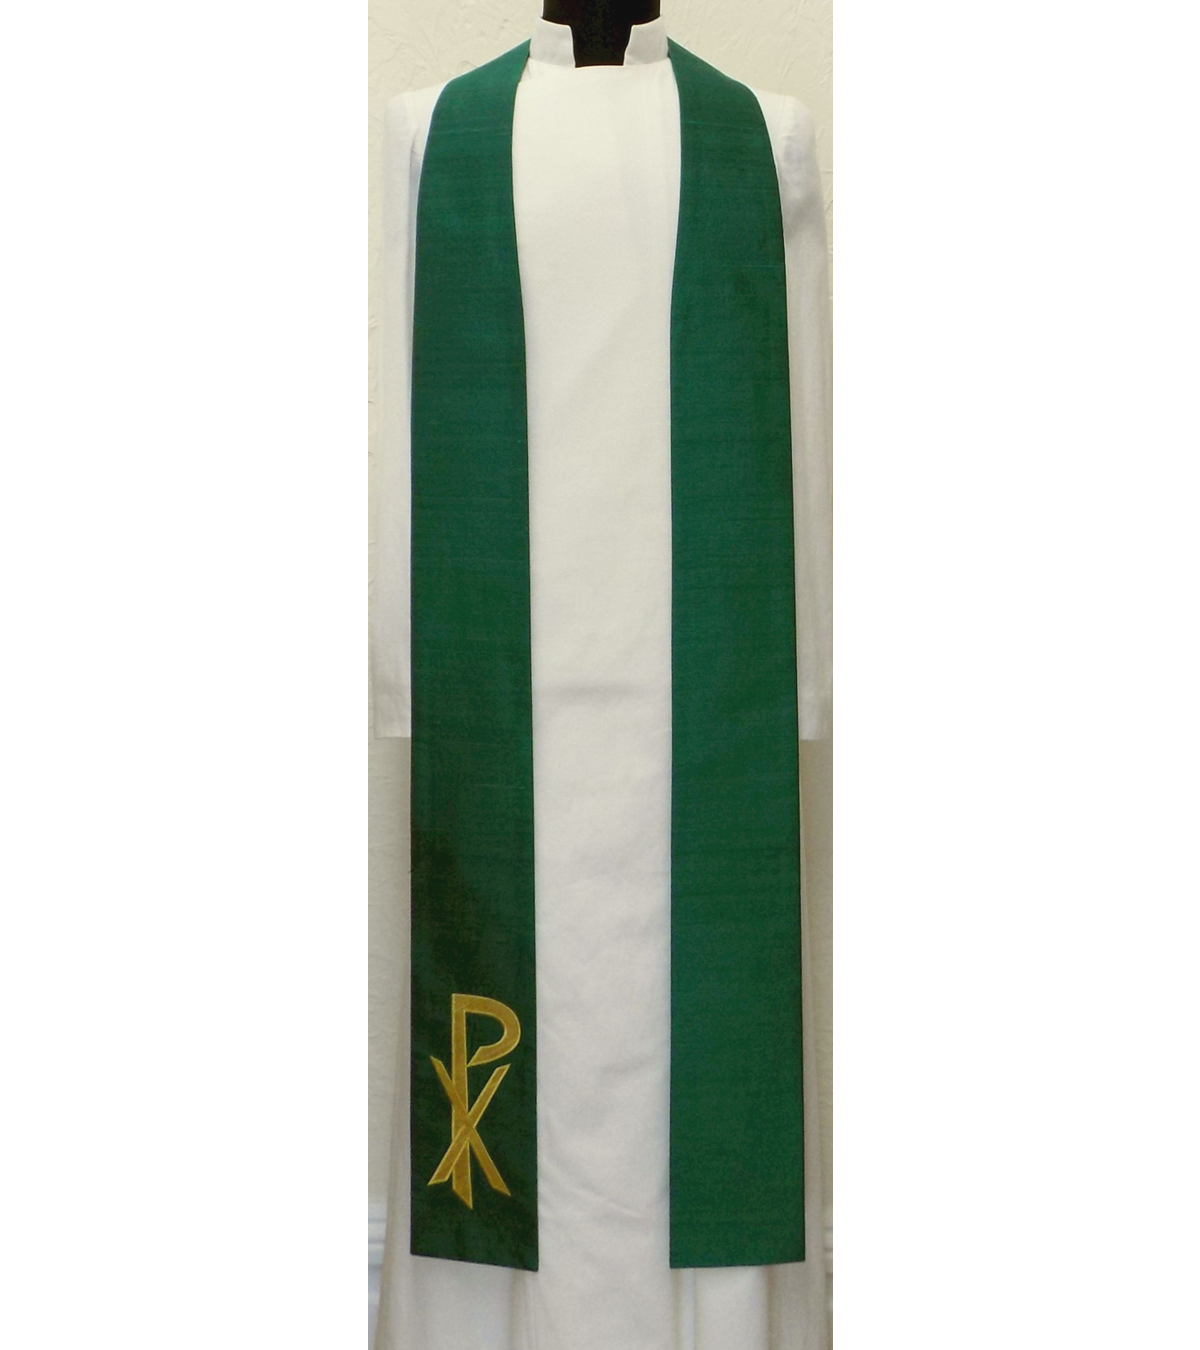 In Christ Alone: Green Silk Clergy Stole with Gold Chi Rho for Ordinary Time